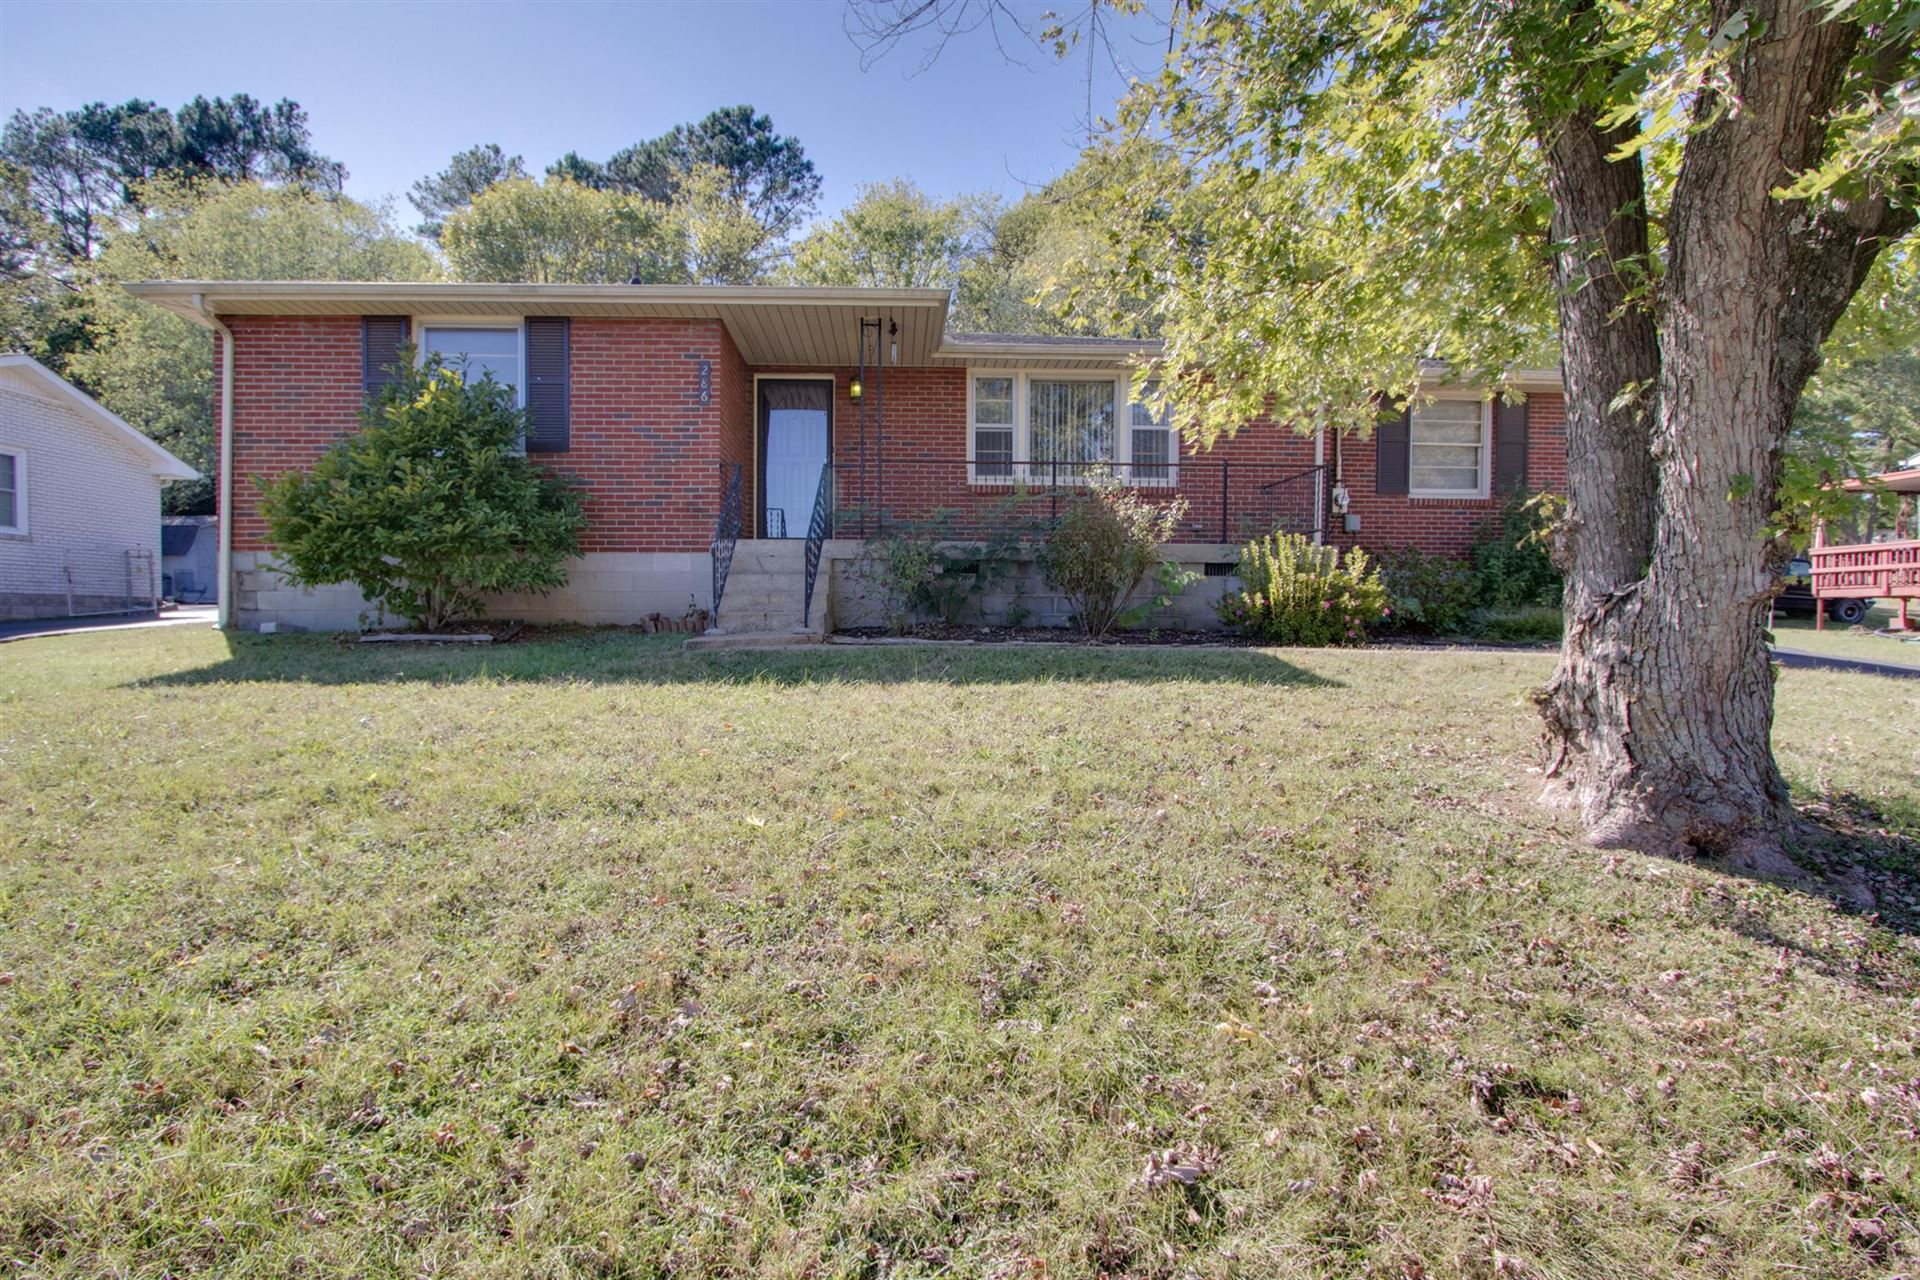 Photo of 286 Bonnasprings Dr, Hermitage, TN 37076 (MLS # 2091932)